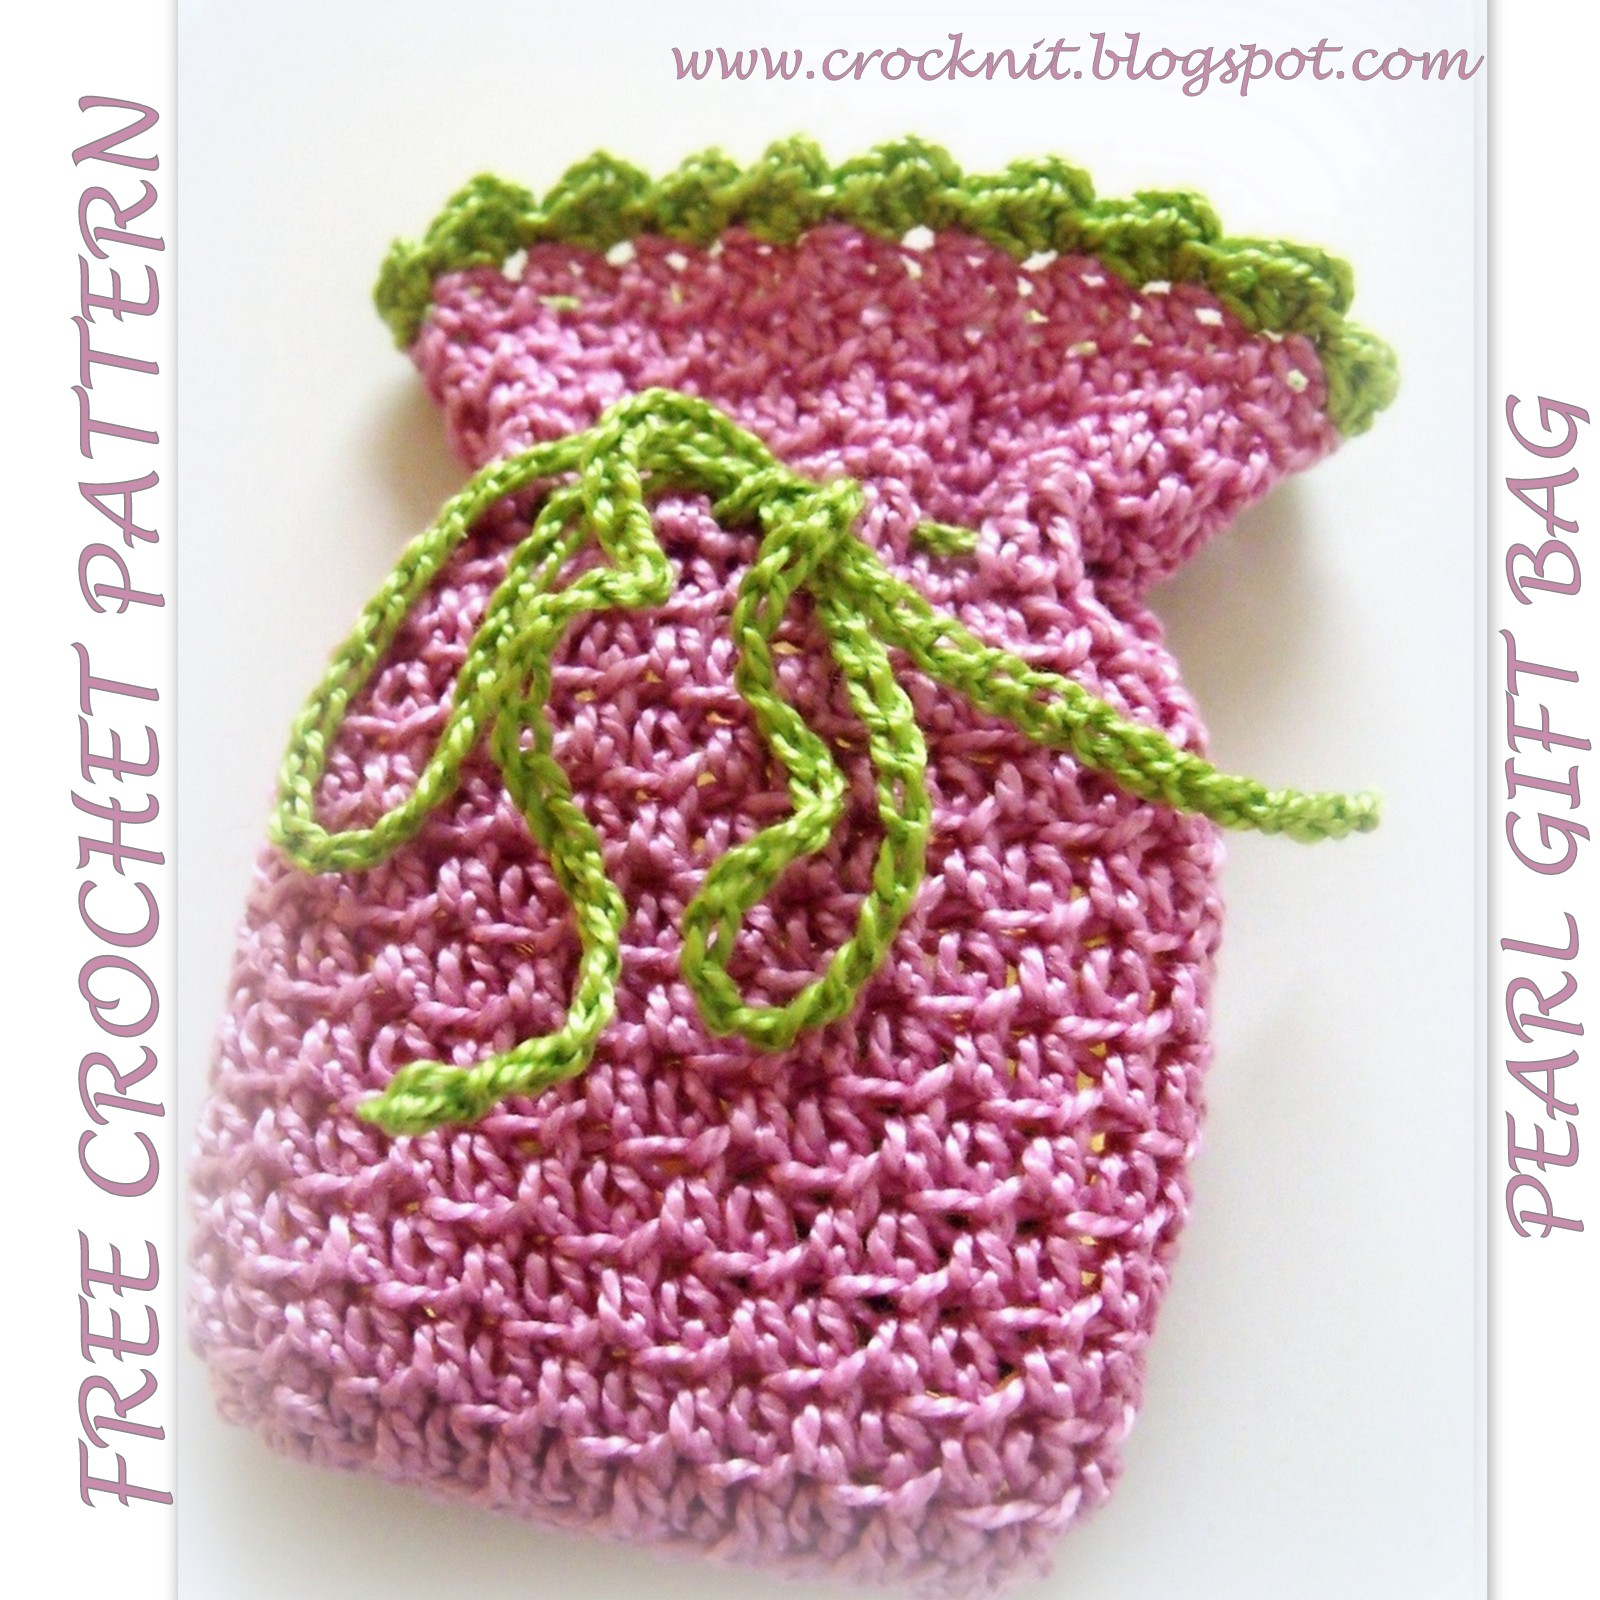 Microcknit creations gift of giving small is good free crochet patterns how to crochet gift bags drawstring bankloansurffo Gallery